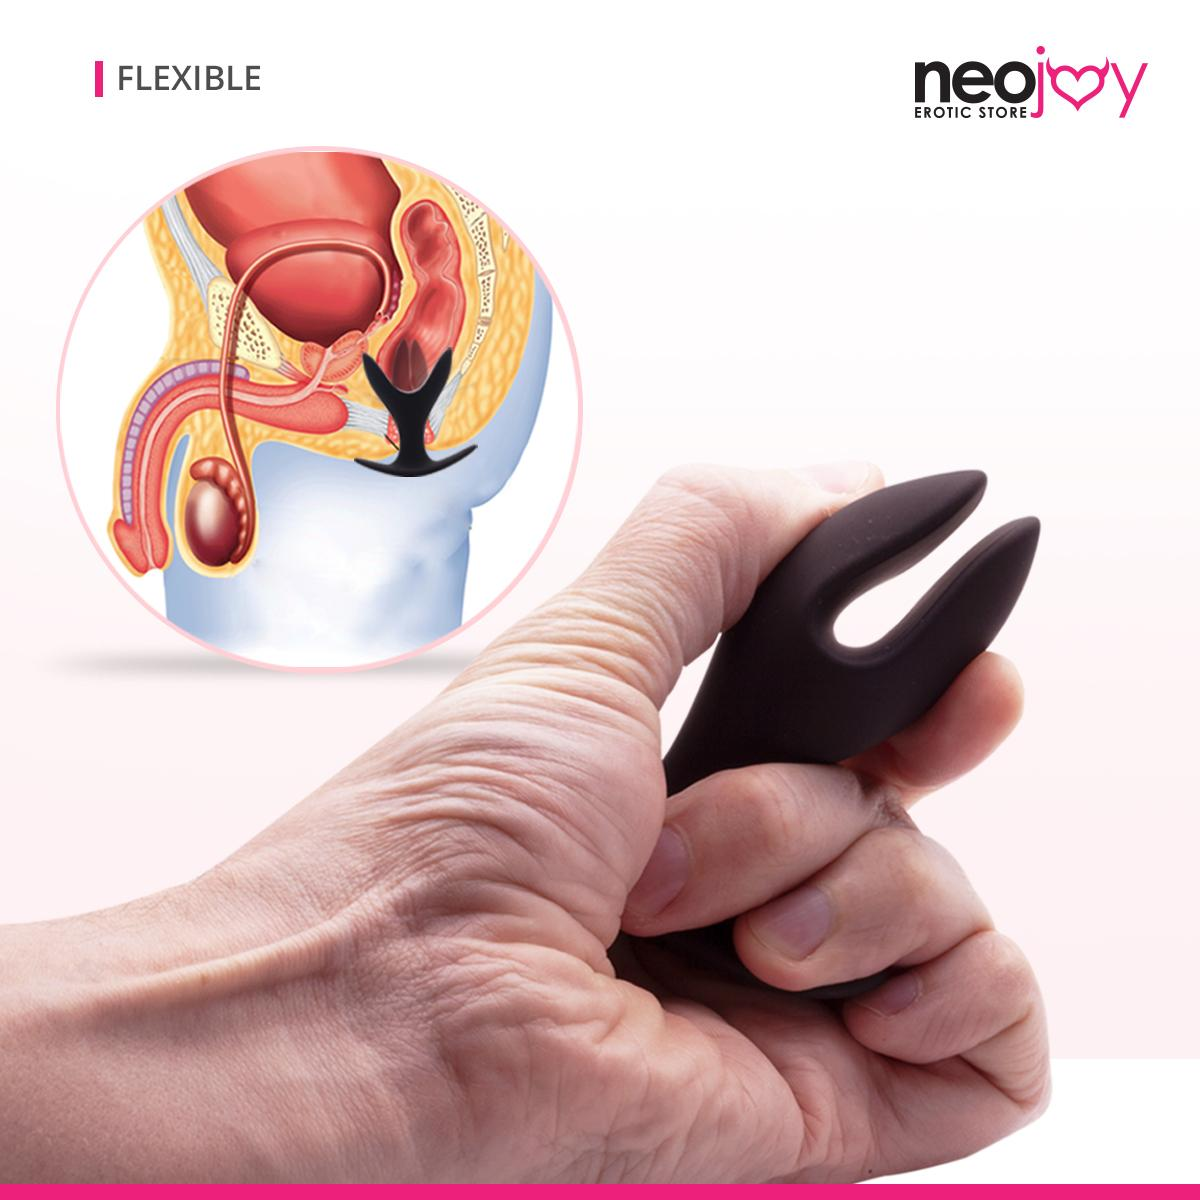 Neojoy Expandable Butt plug Silicone Black With Flat Base Small - Flexible